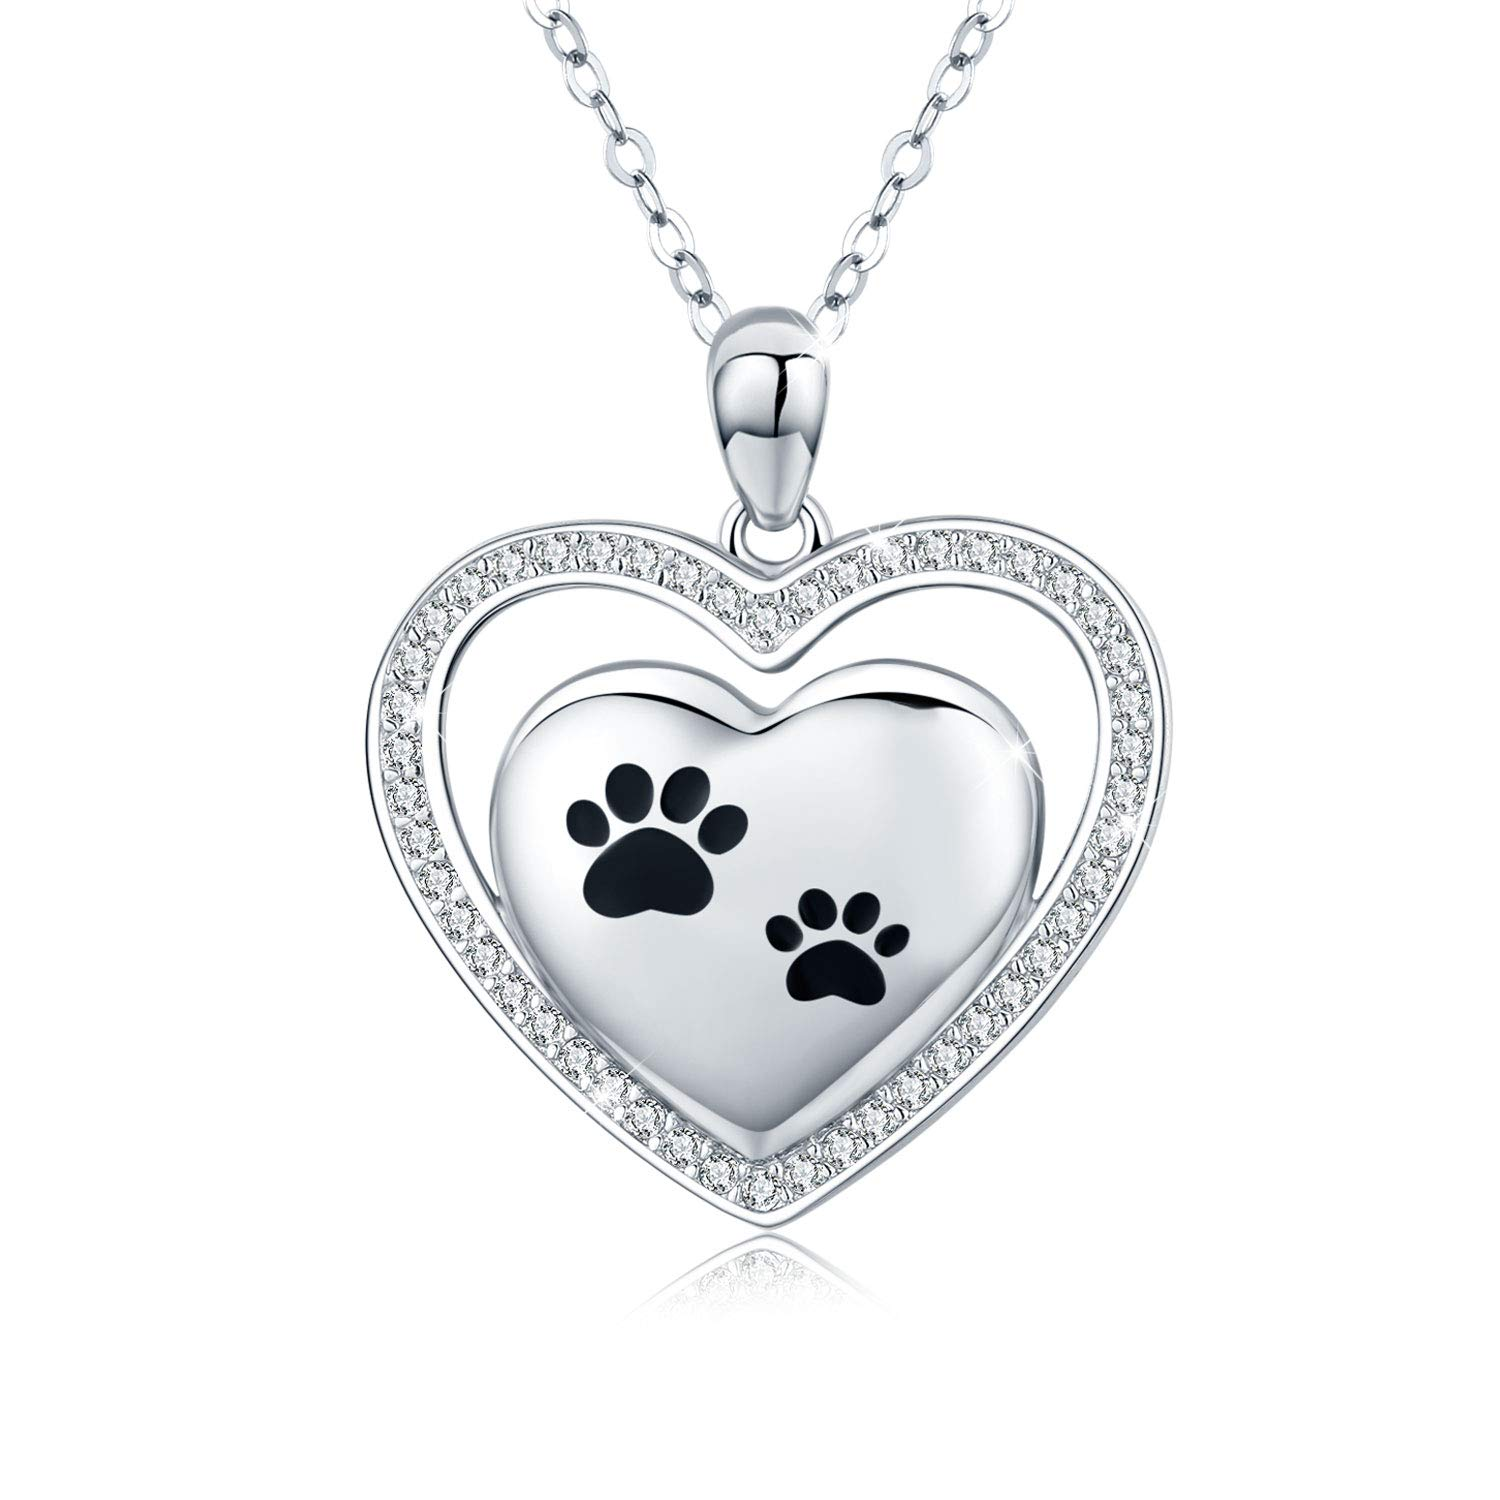 JUSTKIDSTOY Dog Necklace, S925 Sterling Silver Puppy Dog Pet Paw Print with Bone Love Heart Pendant Necklace for Animal Pet Lovers (Puppy Paw Heart Pendant) by JUSTKIDSTOY